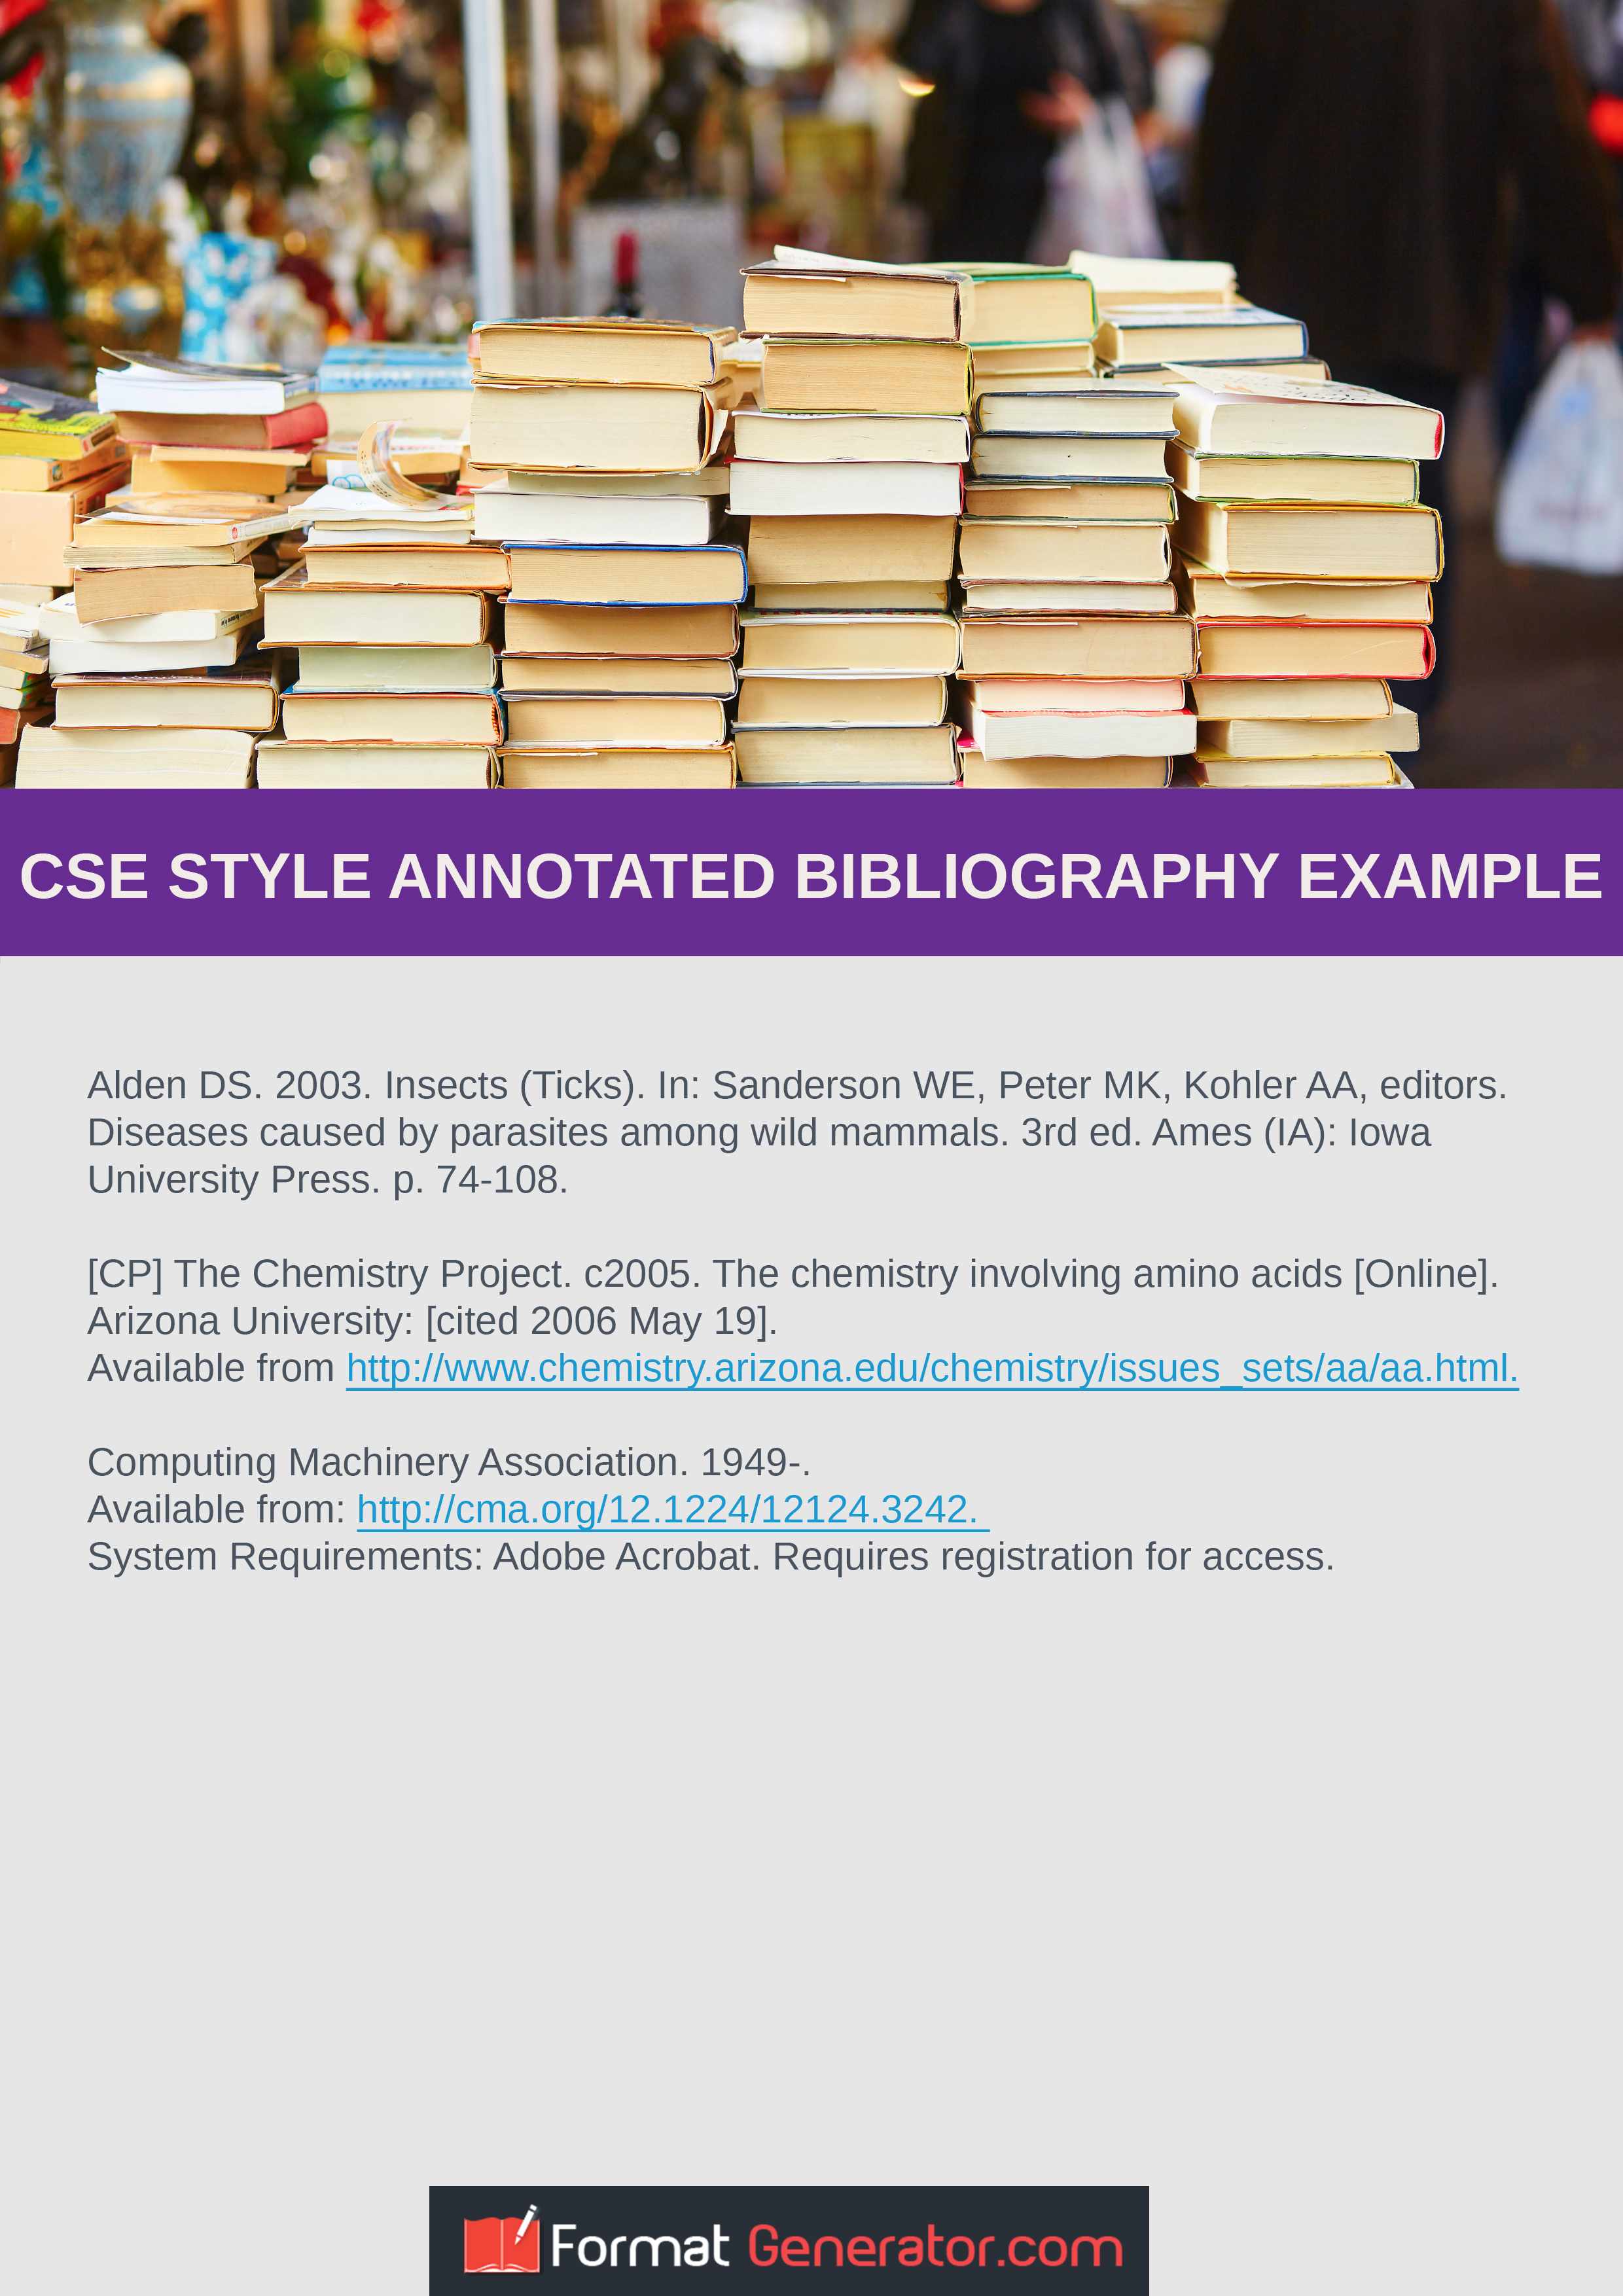 cse style annotated bibliography example that will show you how to